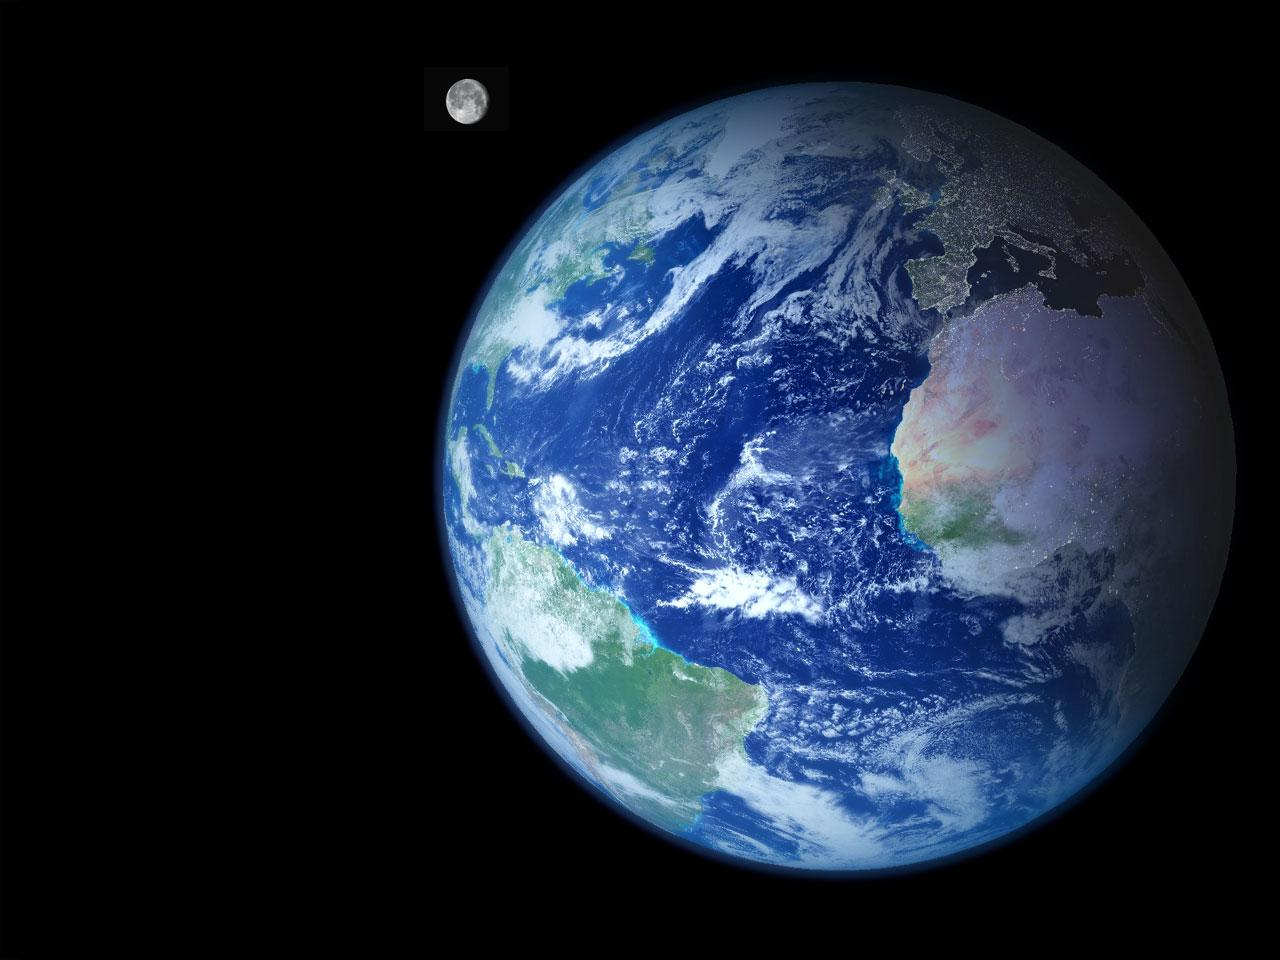 Planet Earth Wallpaper Hd 3212 Hd Wallpapers in Space   Imagescicom 1280x960